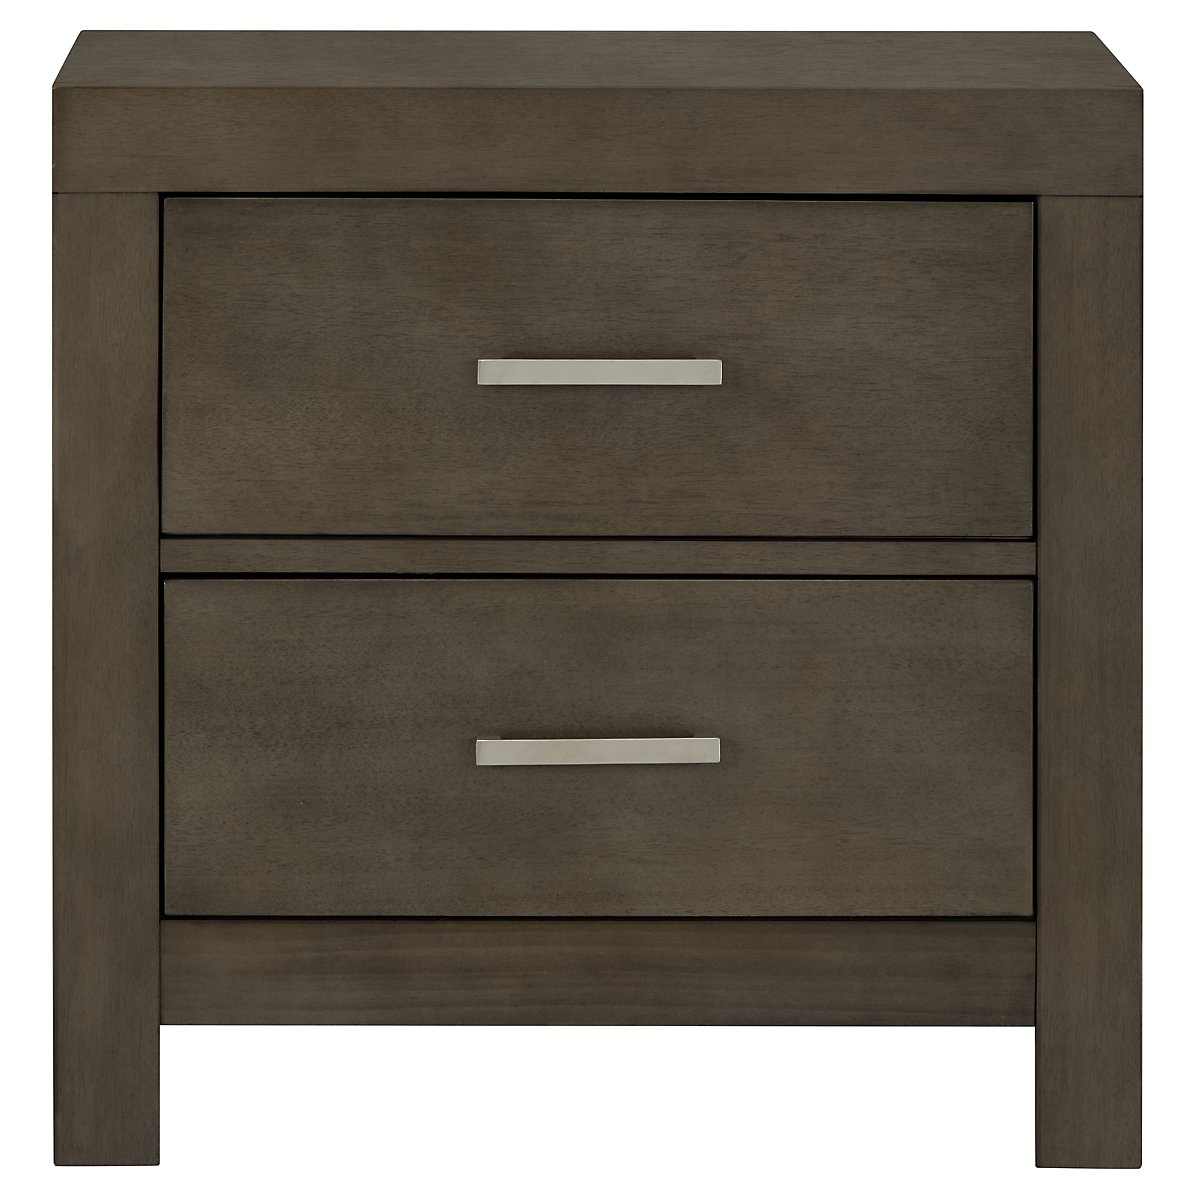 City furniture omaha gray nightstand - Pictures of nightstands ...